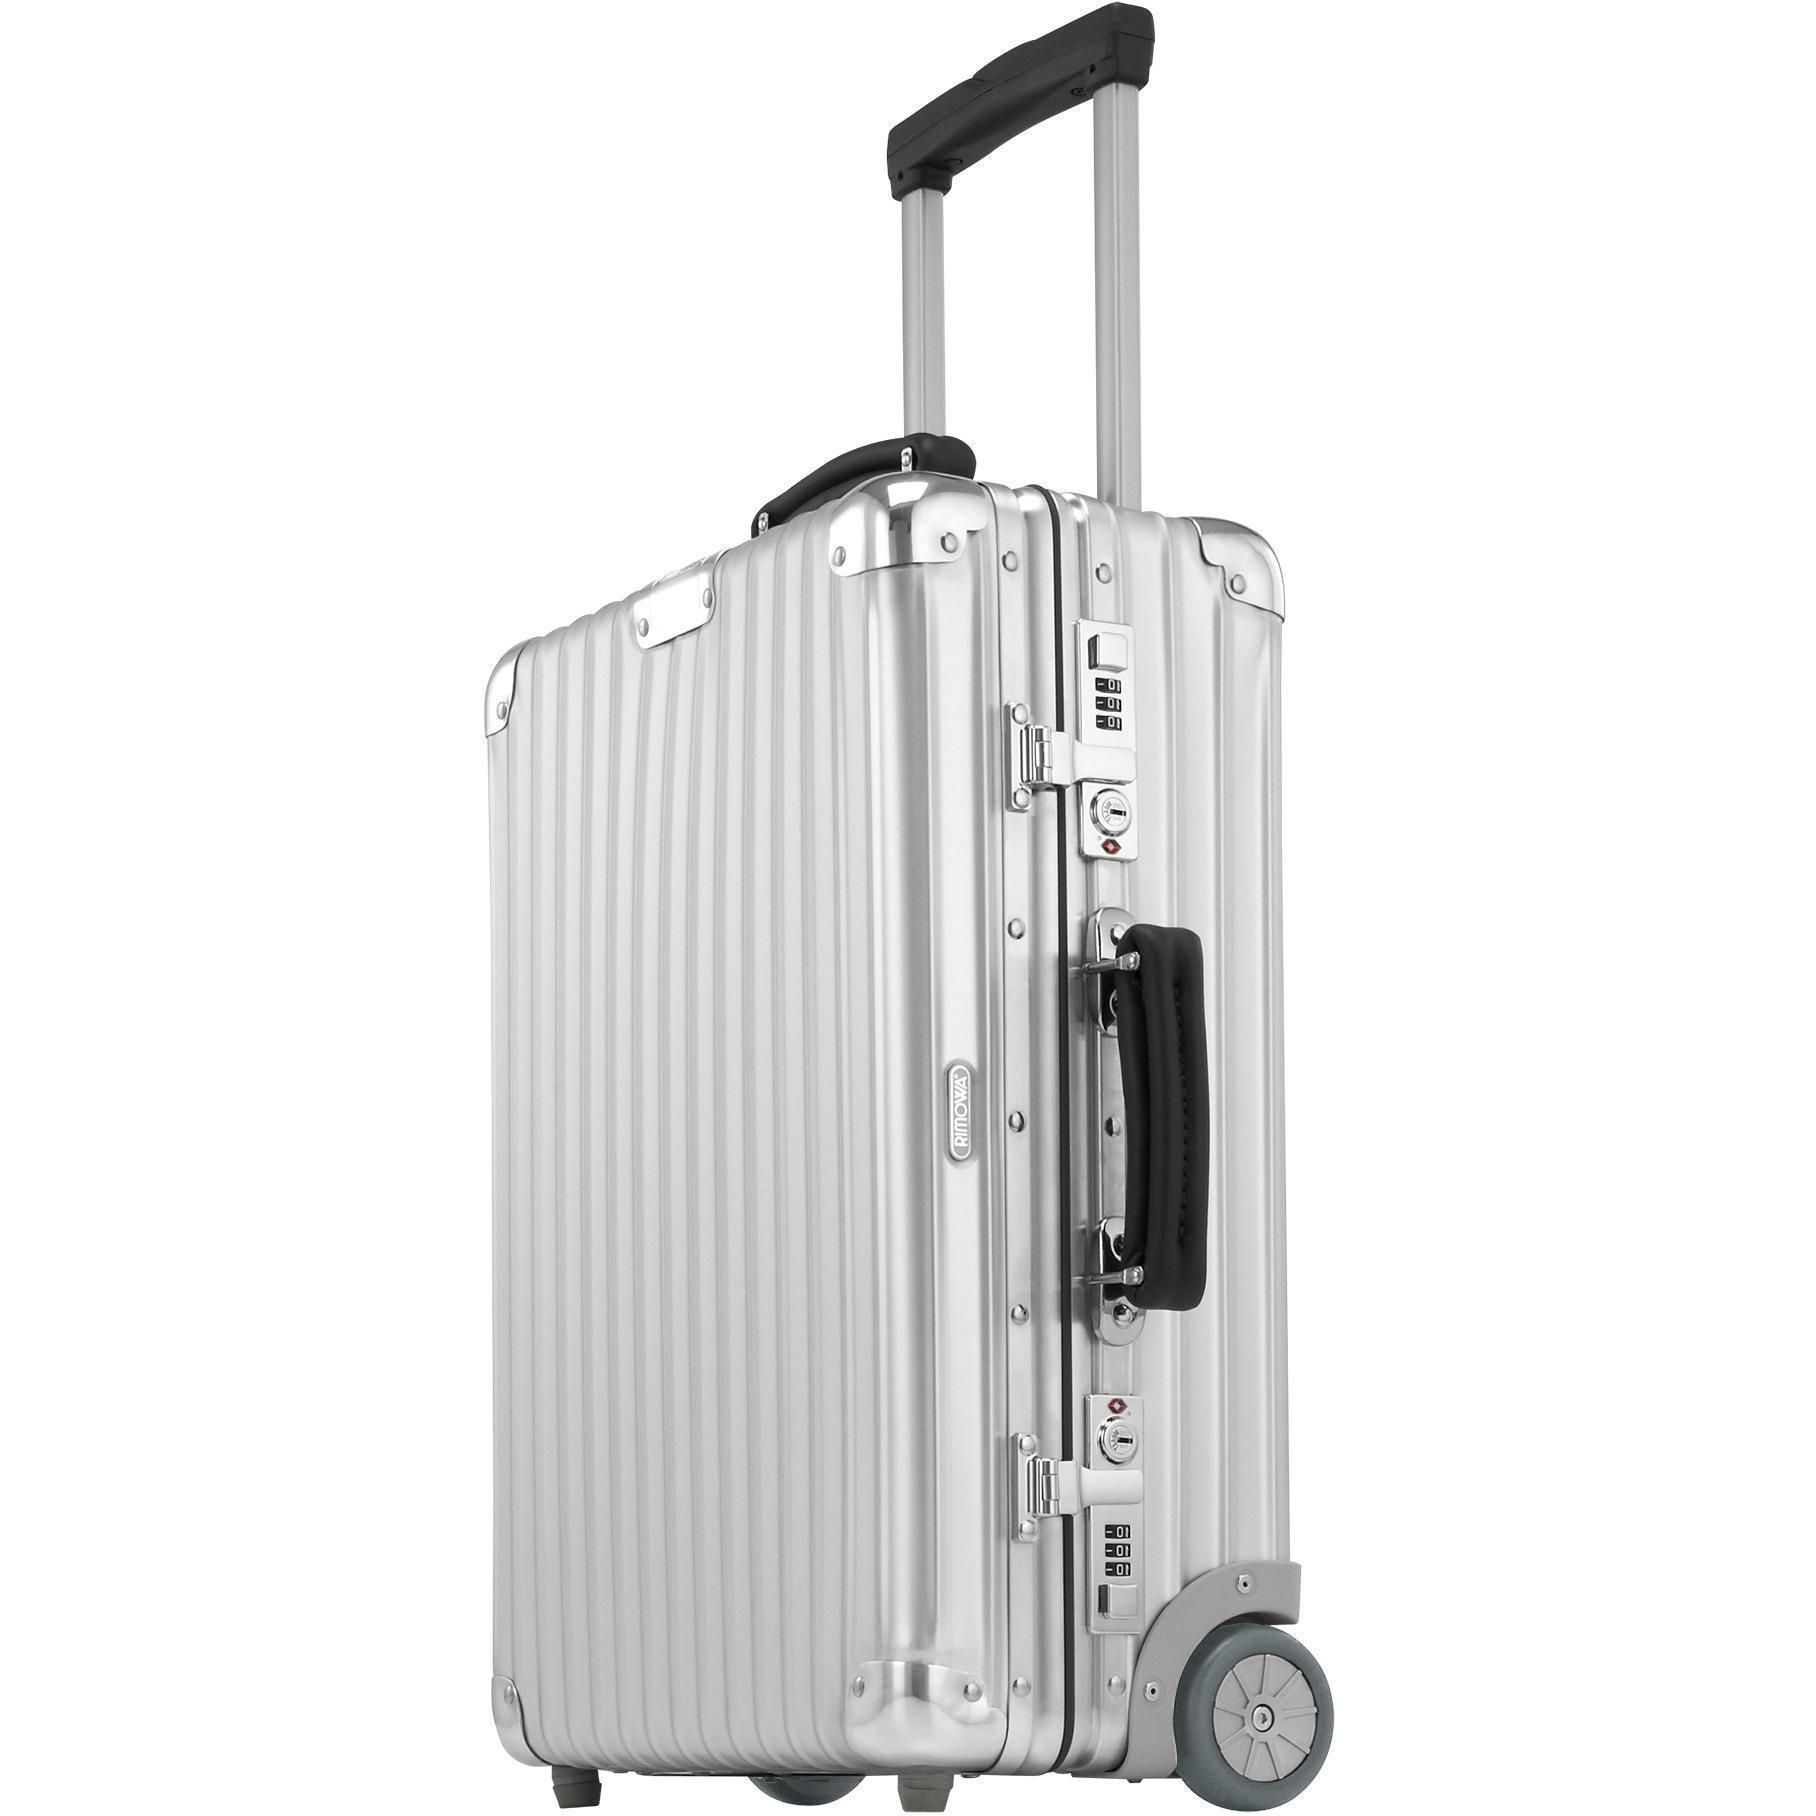 rimowa classic flight cabin trolley iata 52 kaufen bei. Black Bedroom Furniture Sets. Home Design Ideas